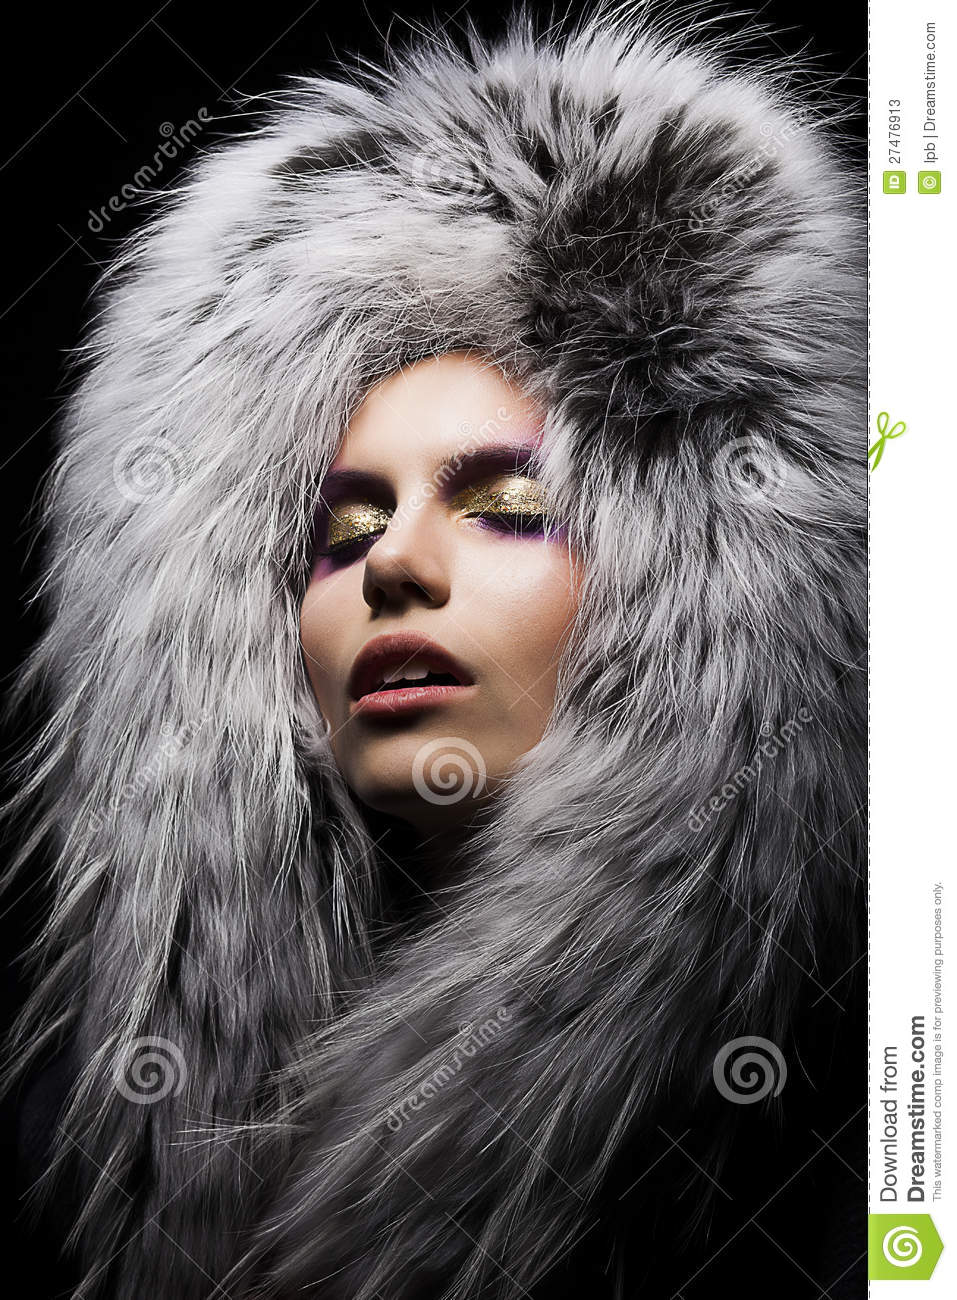 Sensual Woman In Fur Fashion Collar Stock Image - Image ... Stylish Cool Girl With Hat